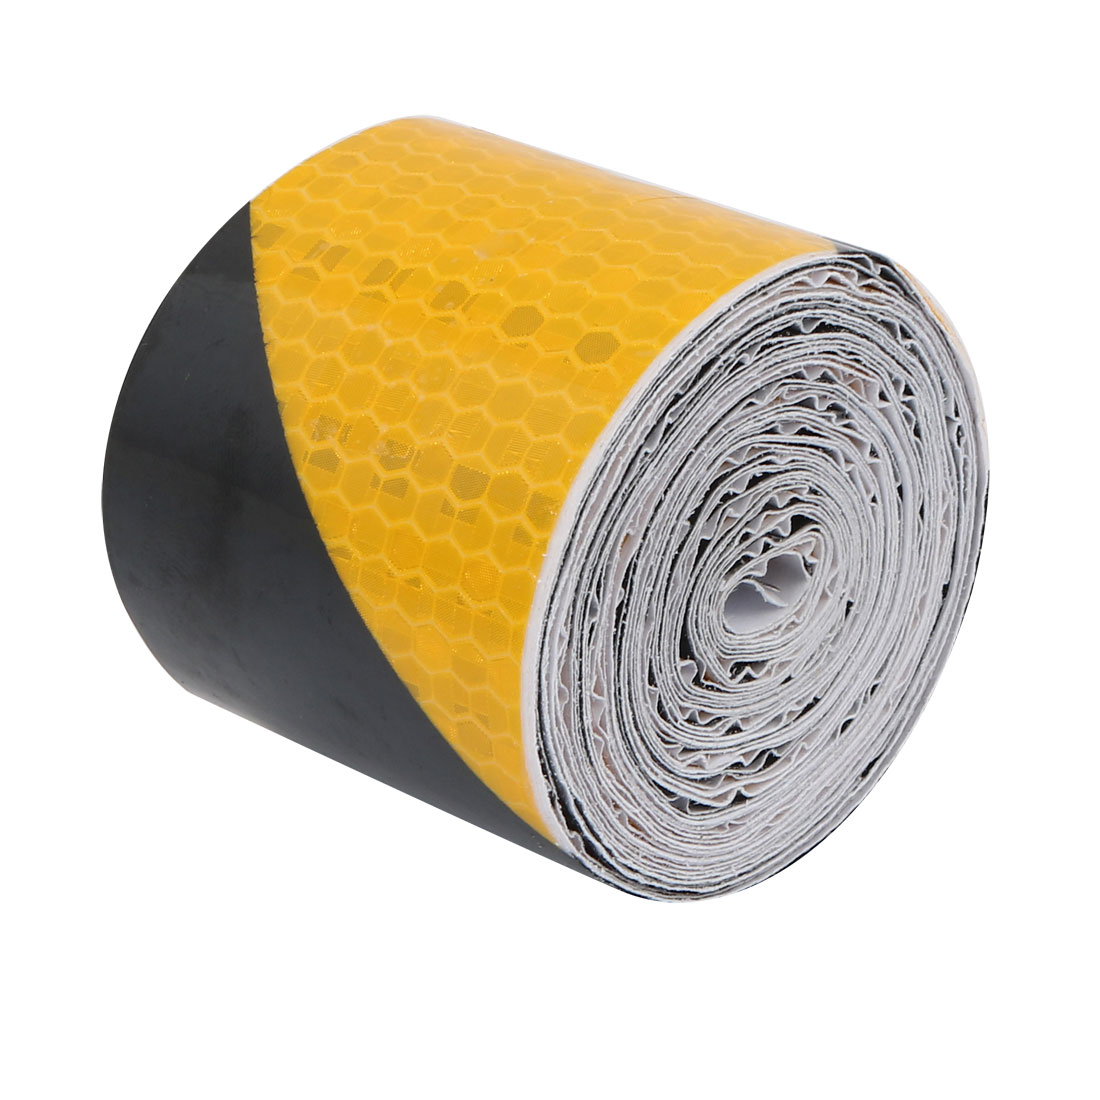 5M Length 5cm Width Single Sided Adhesive Reflective Warning Tape Yellow Black